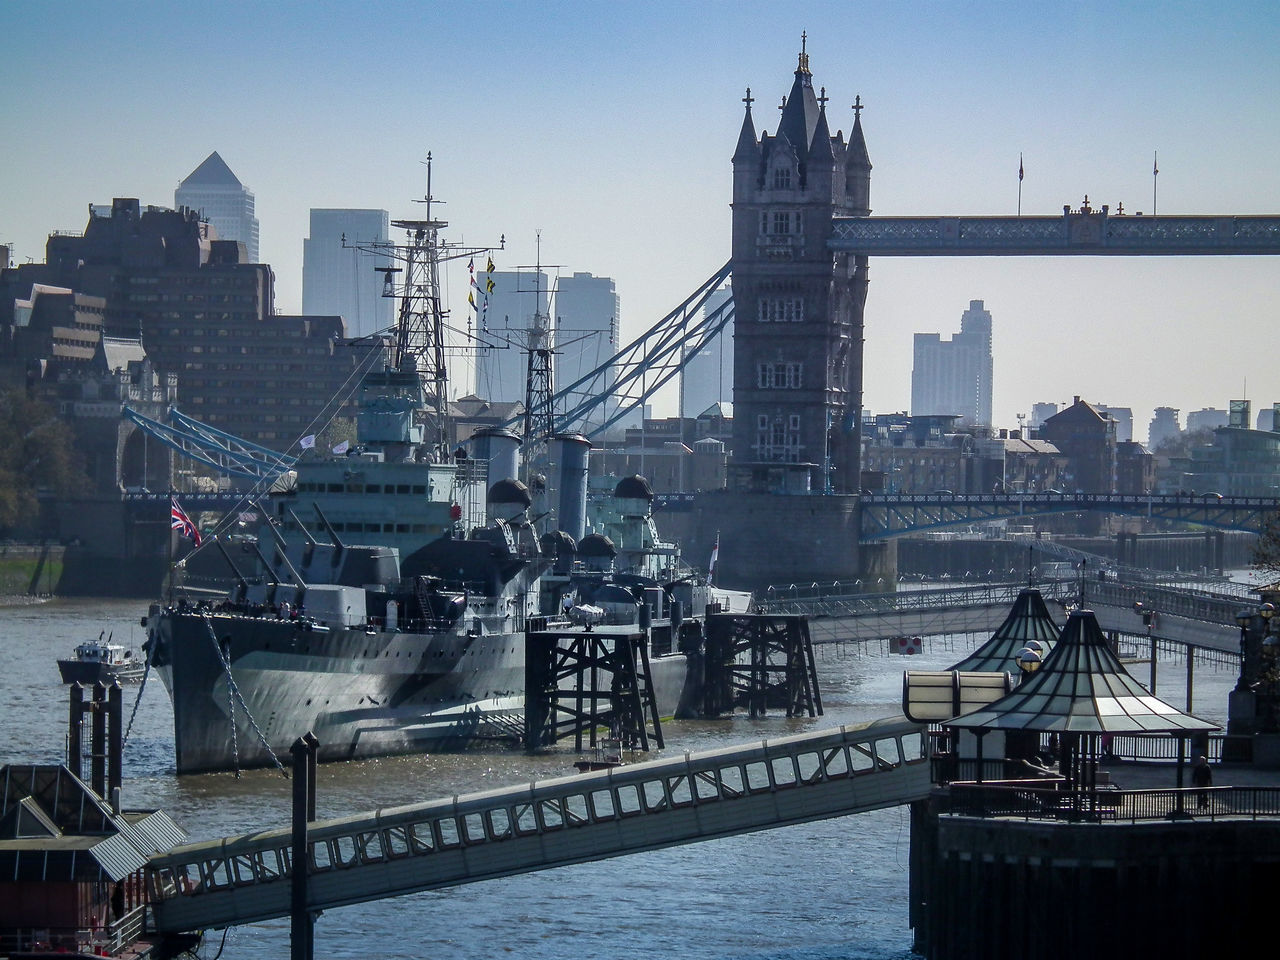 Architecture Bridge - Man Made Structure Building Exterior Built Structure City Cityscape Day England Inghilterra London Londra Nautical Vessel No People Outdoors River Sky Skyscraper Tamigi Themse Transportation Travel Destinations Urban Skyline Water